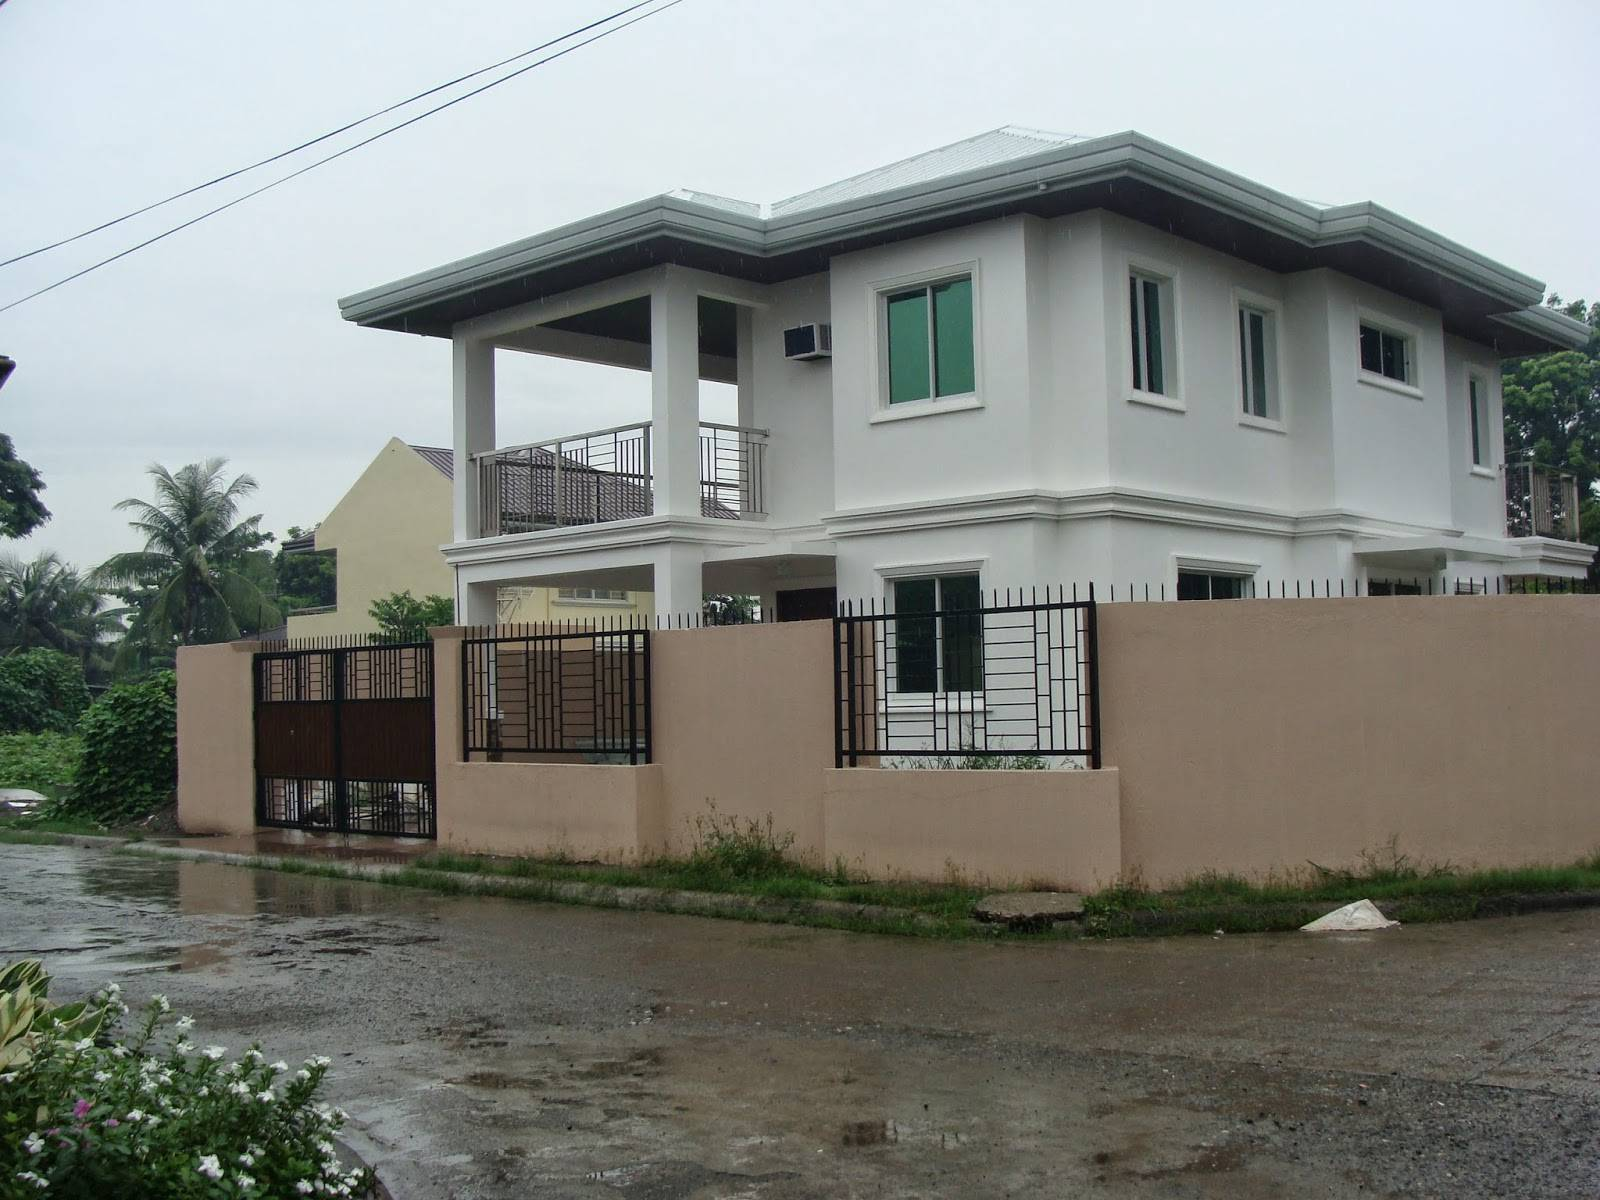 Modern contemporary house exterior design likewise house philippine wo storey house plans with balcony download